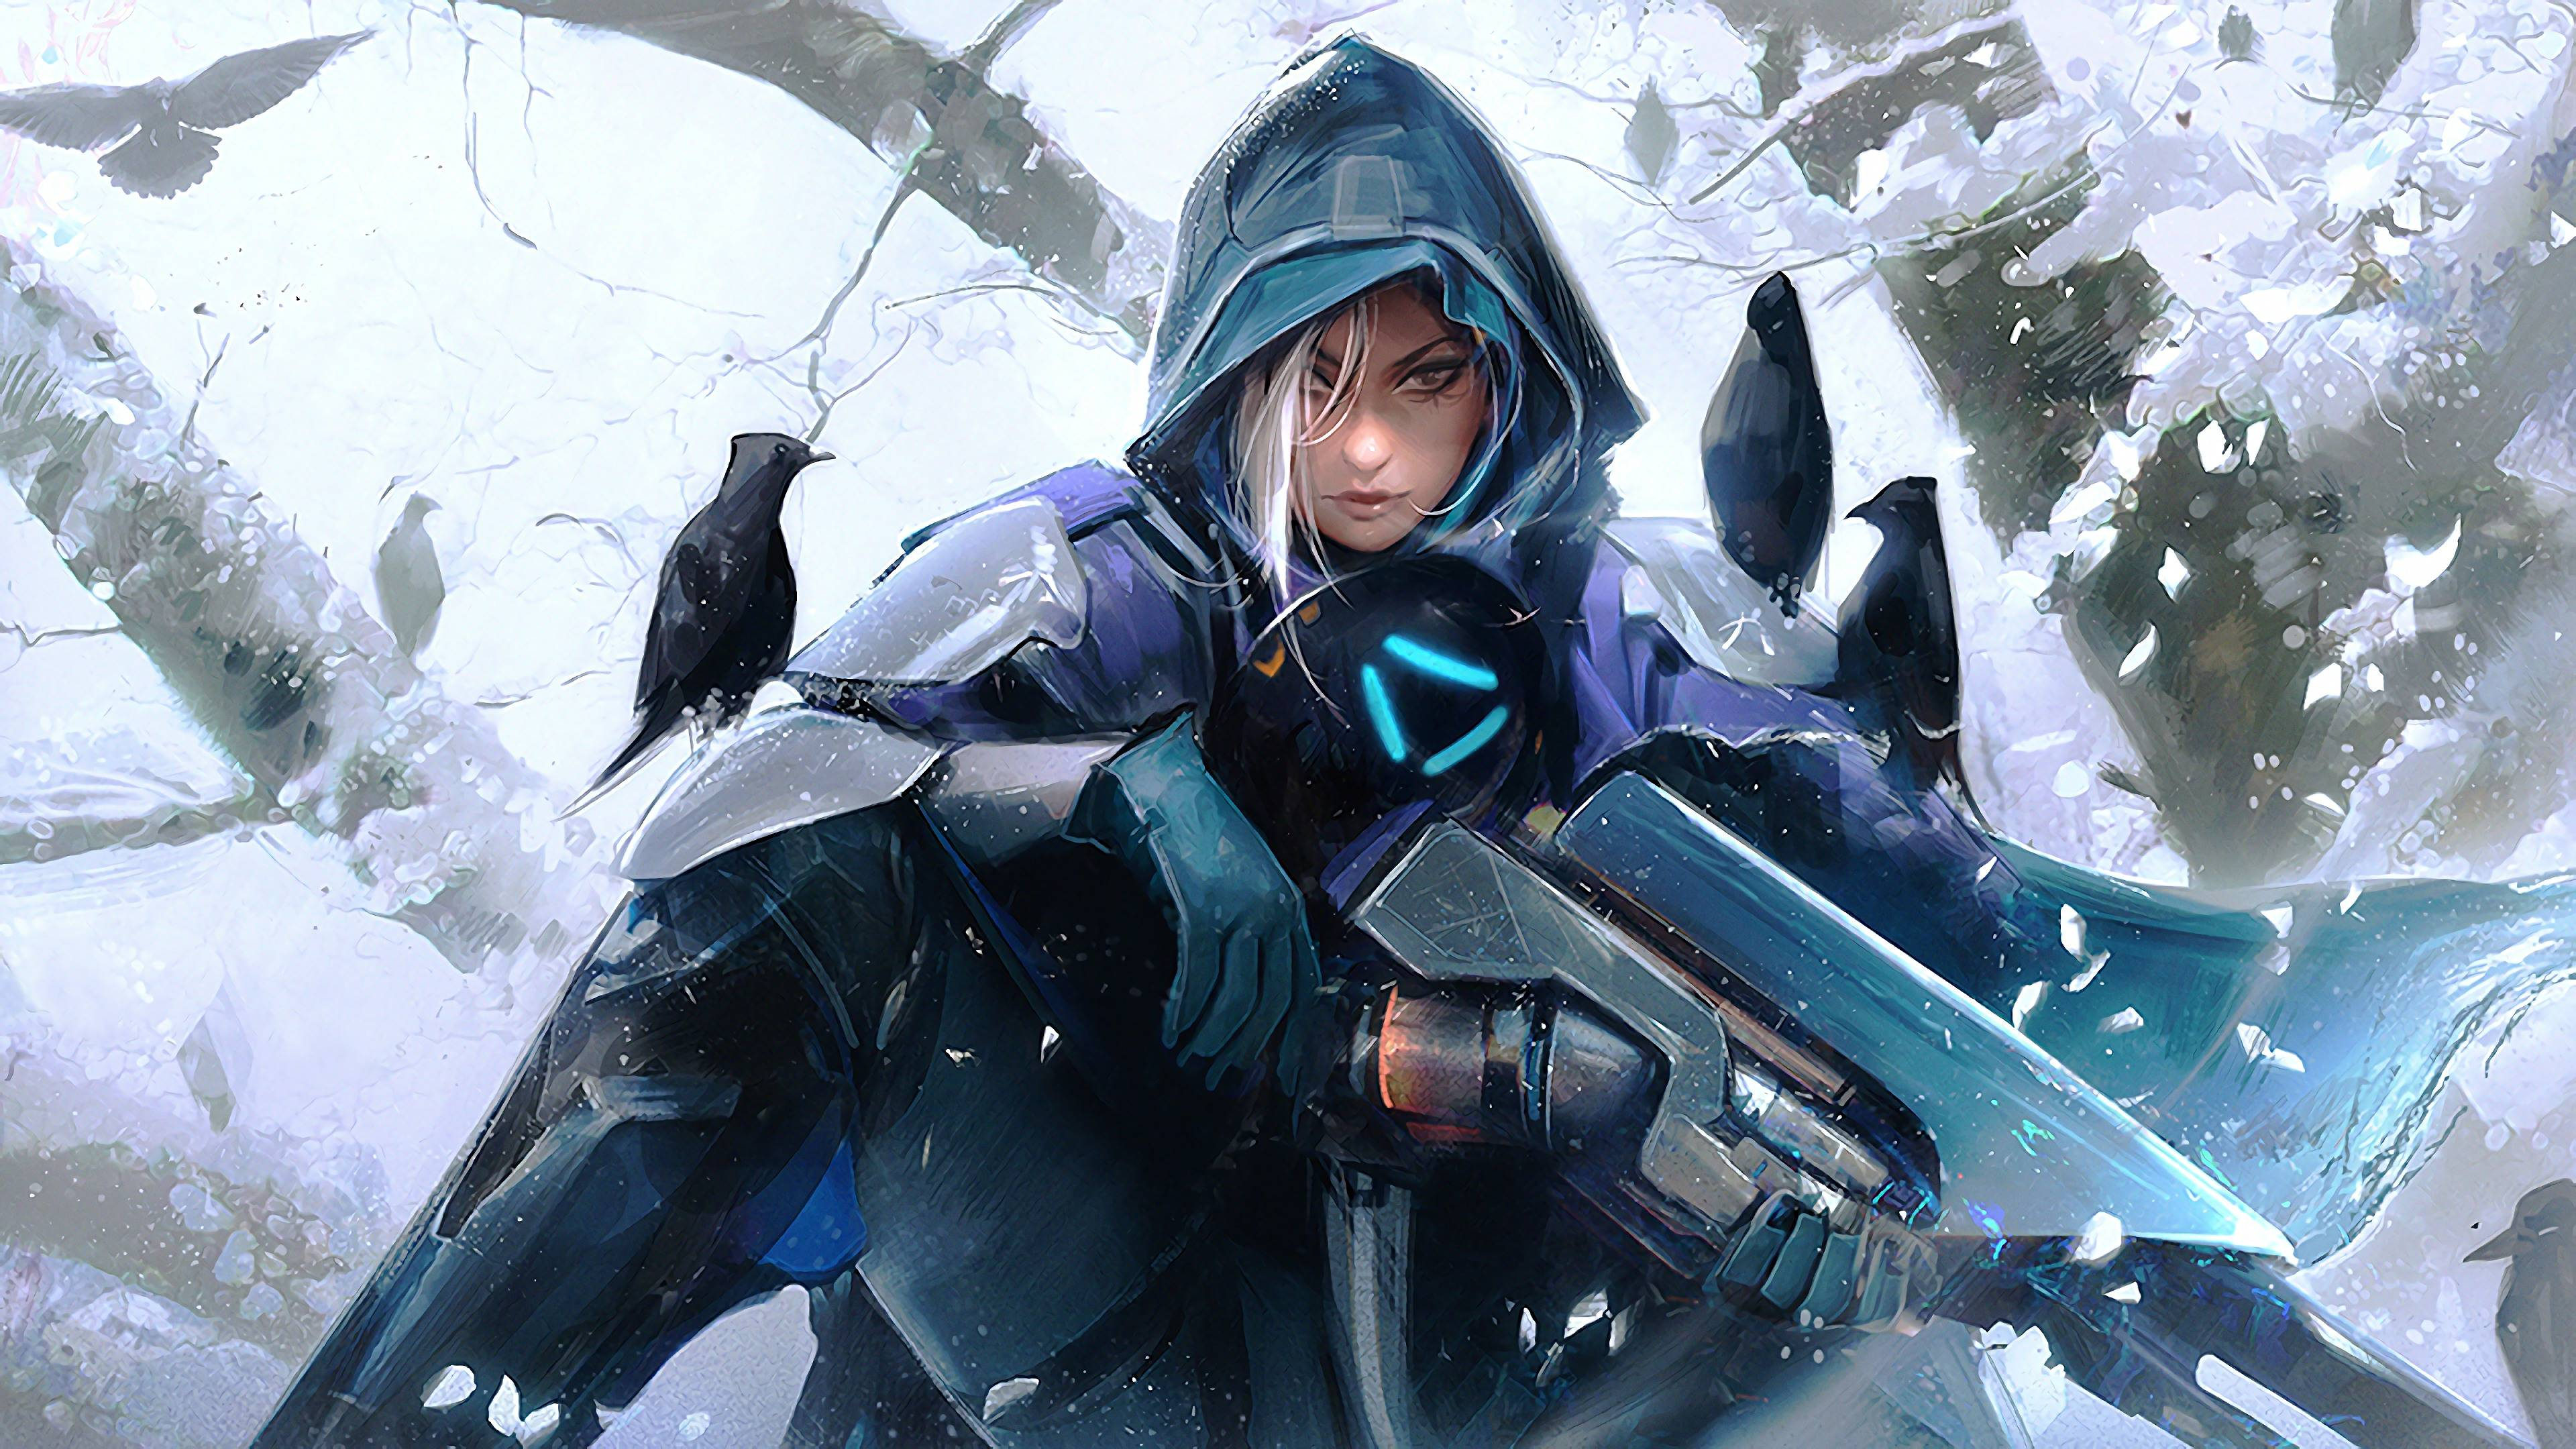 Ana Overwatch Wallpapers Top Free Ana Overwatch Backgrounds Wallpaperaccess